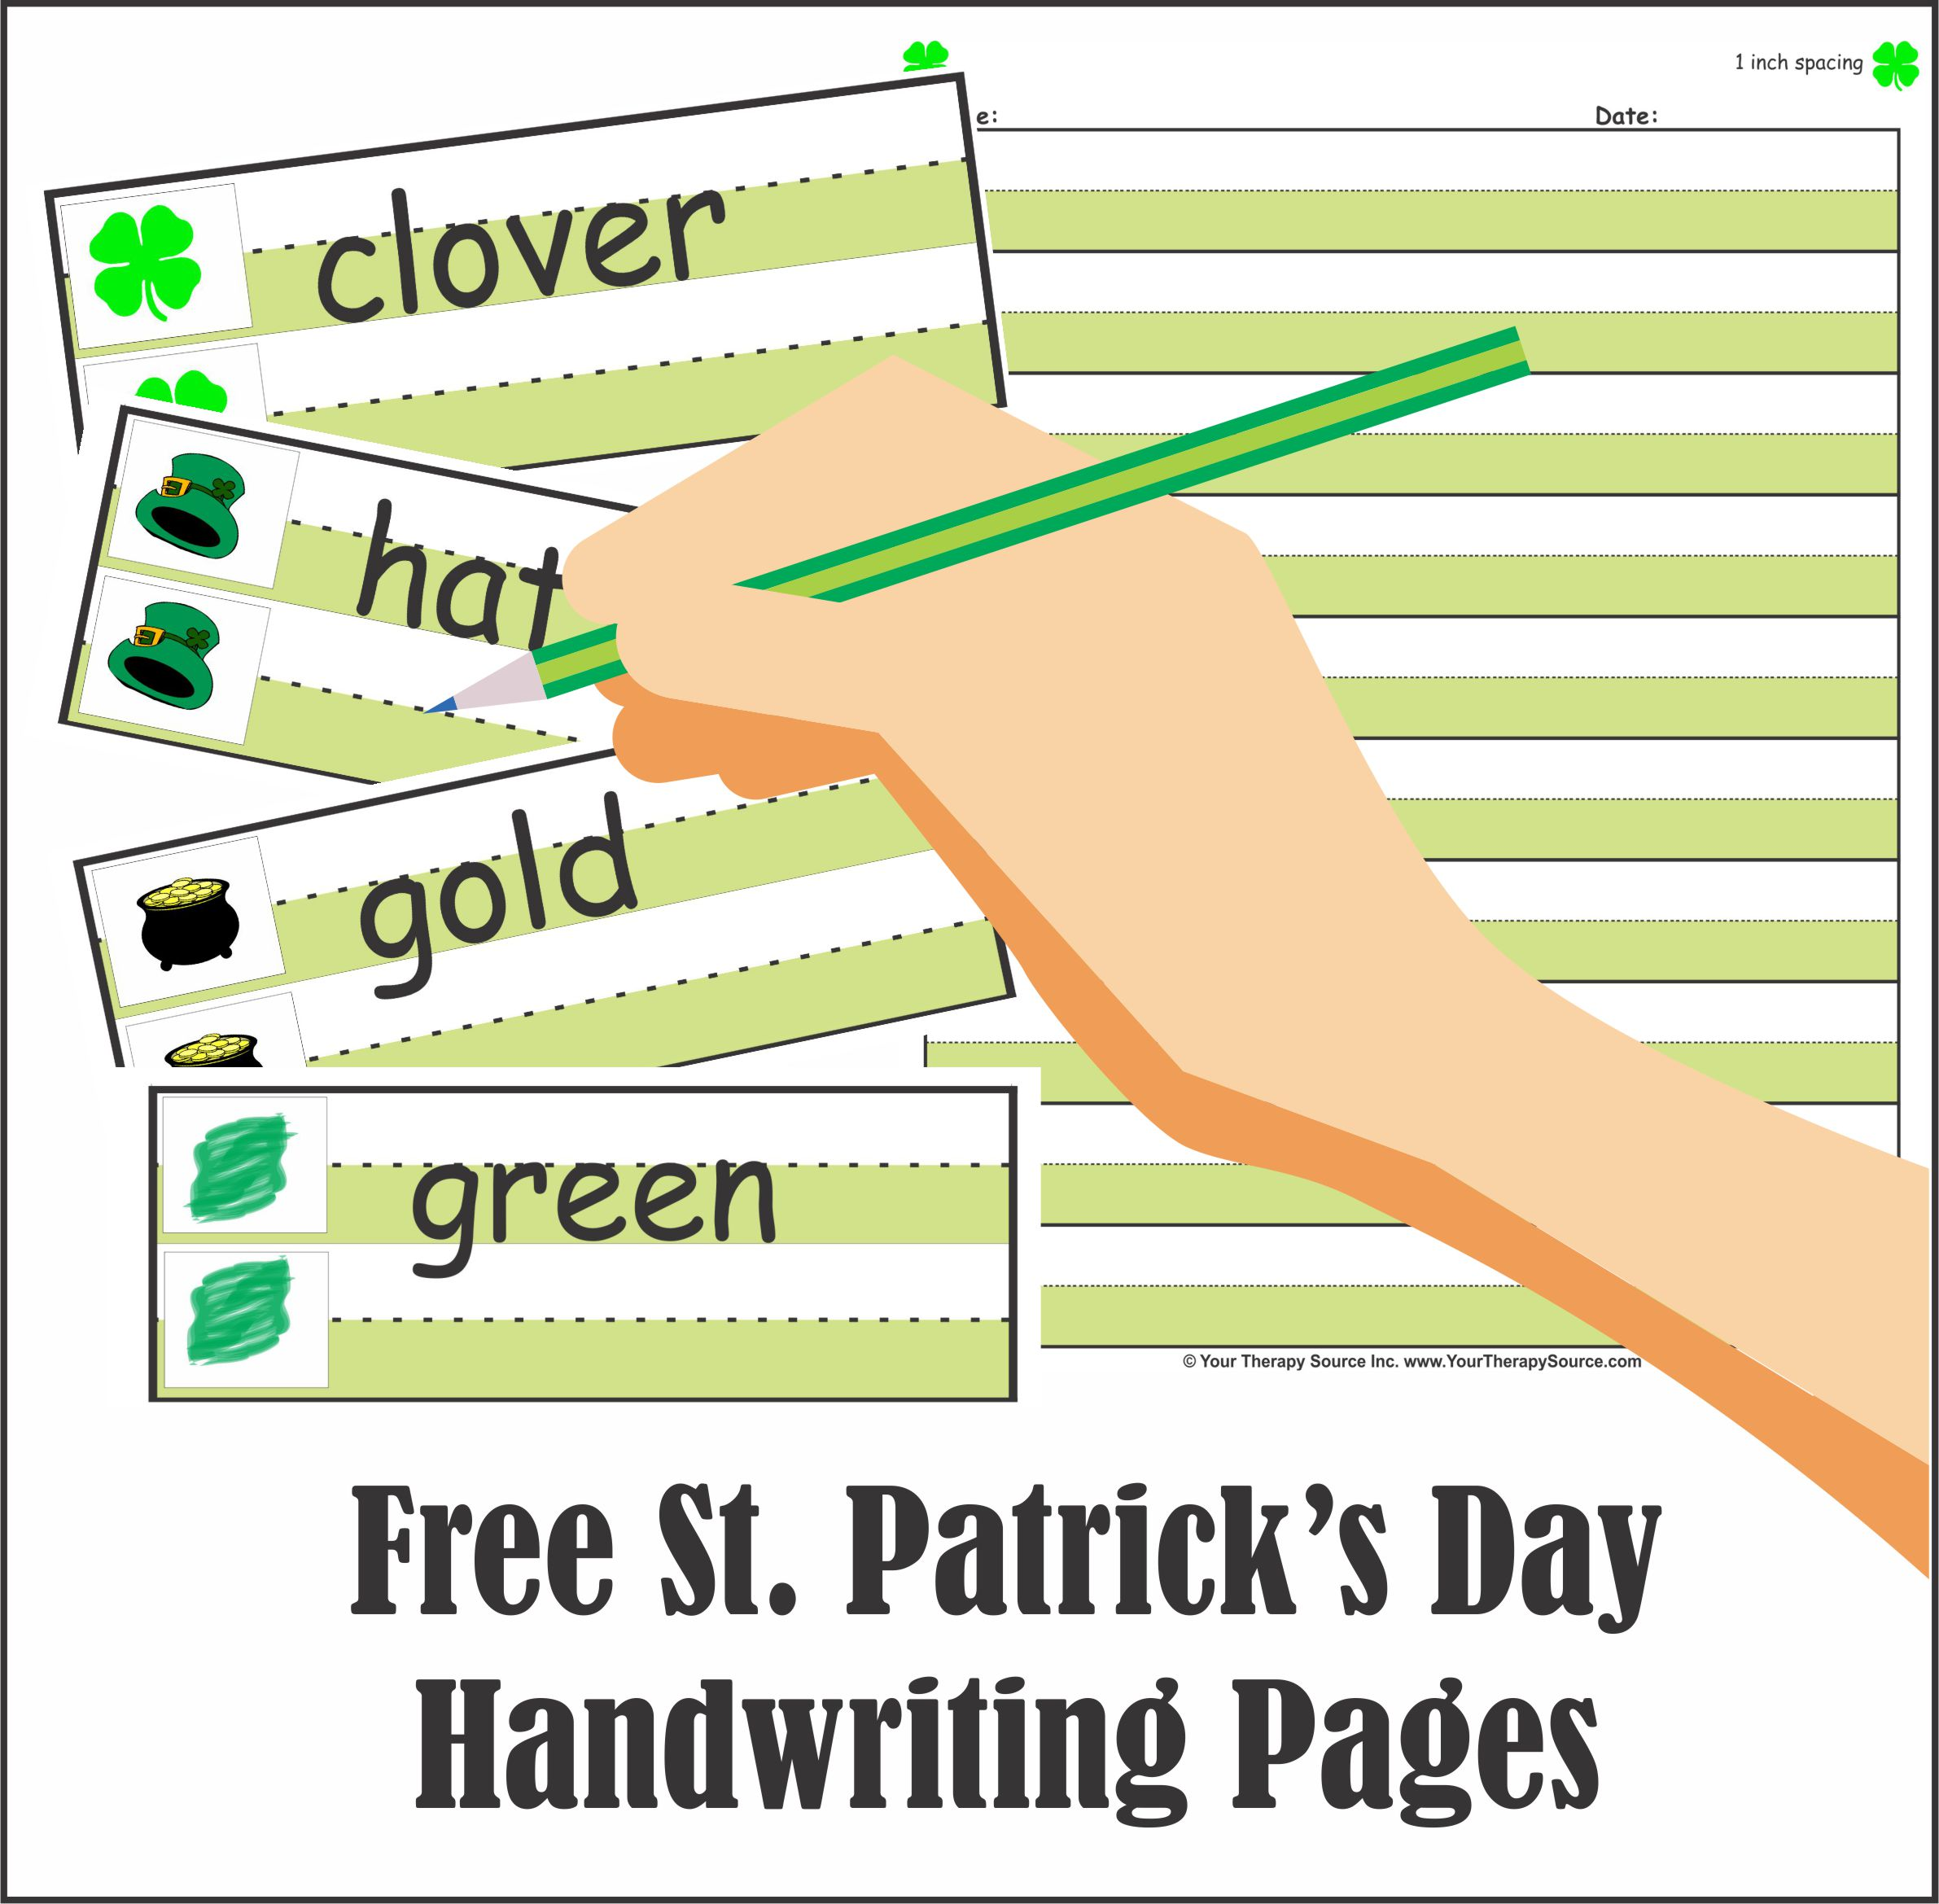 Free St. Patrick's Day Handwriting Pages